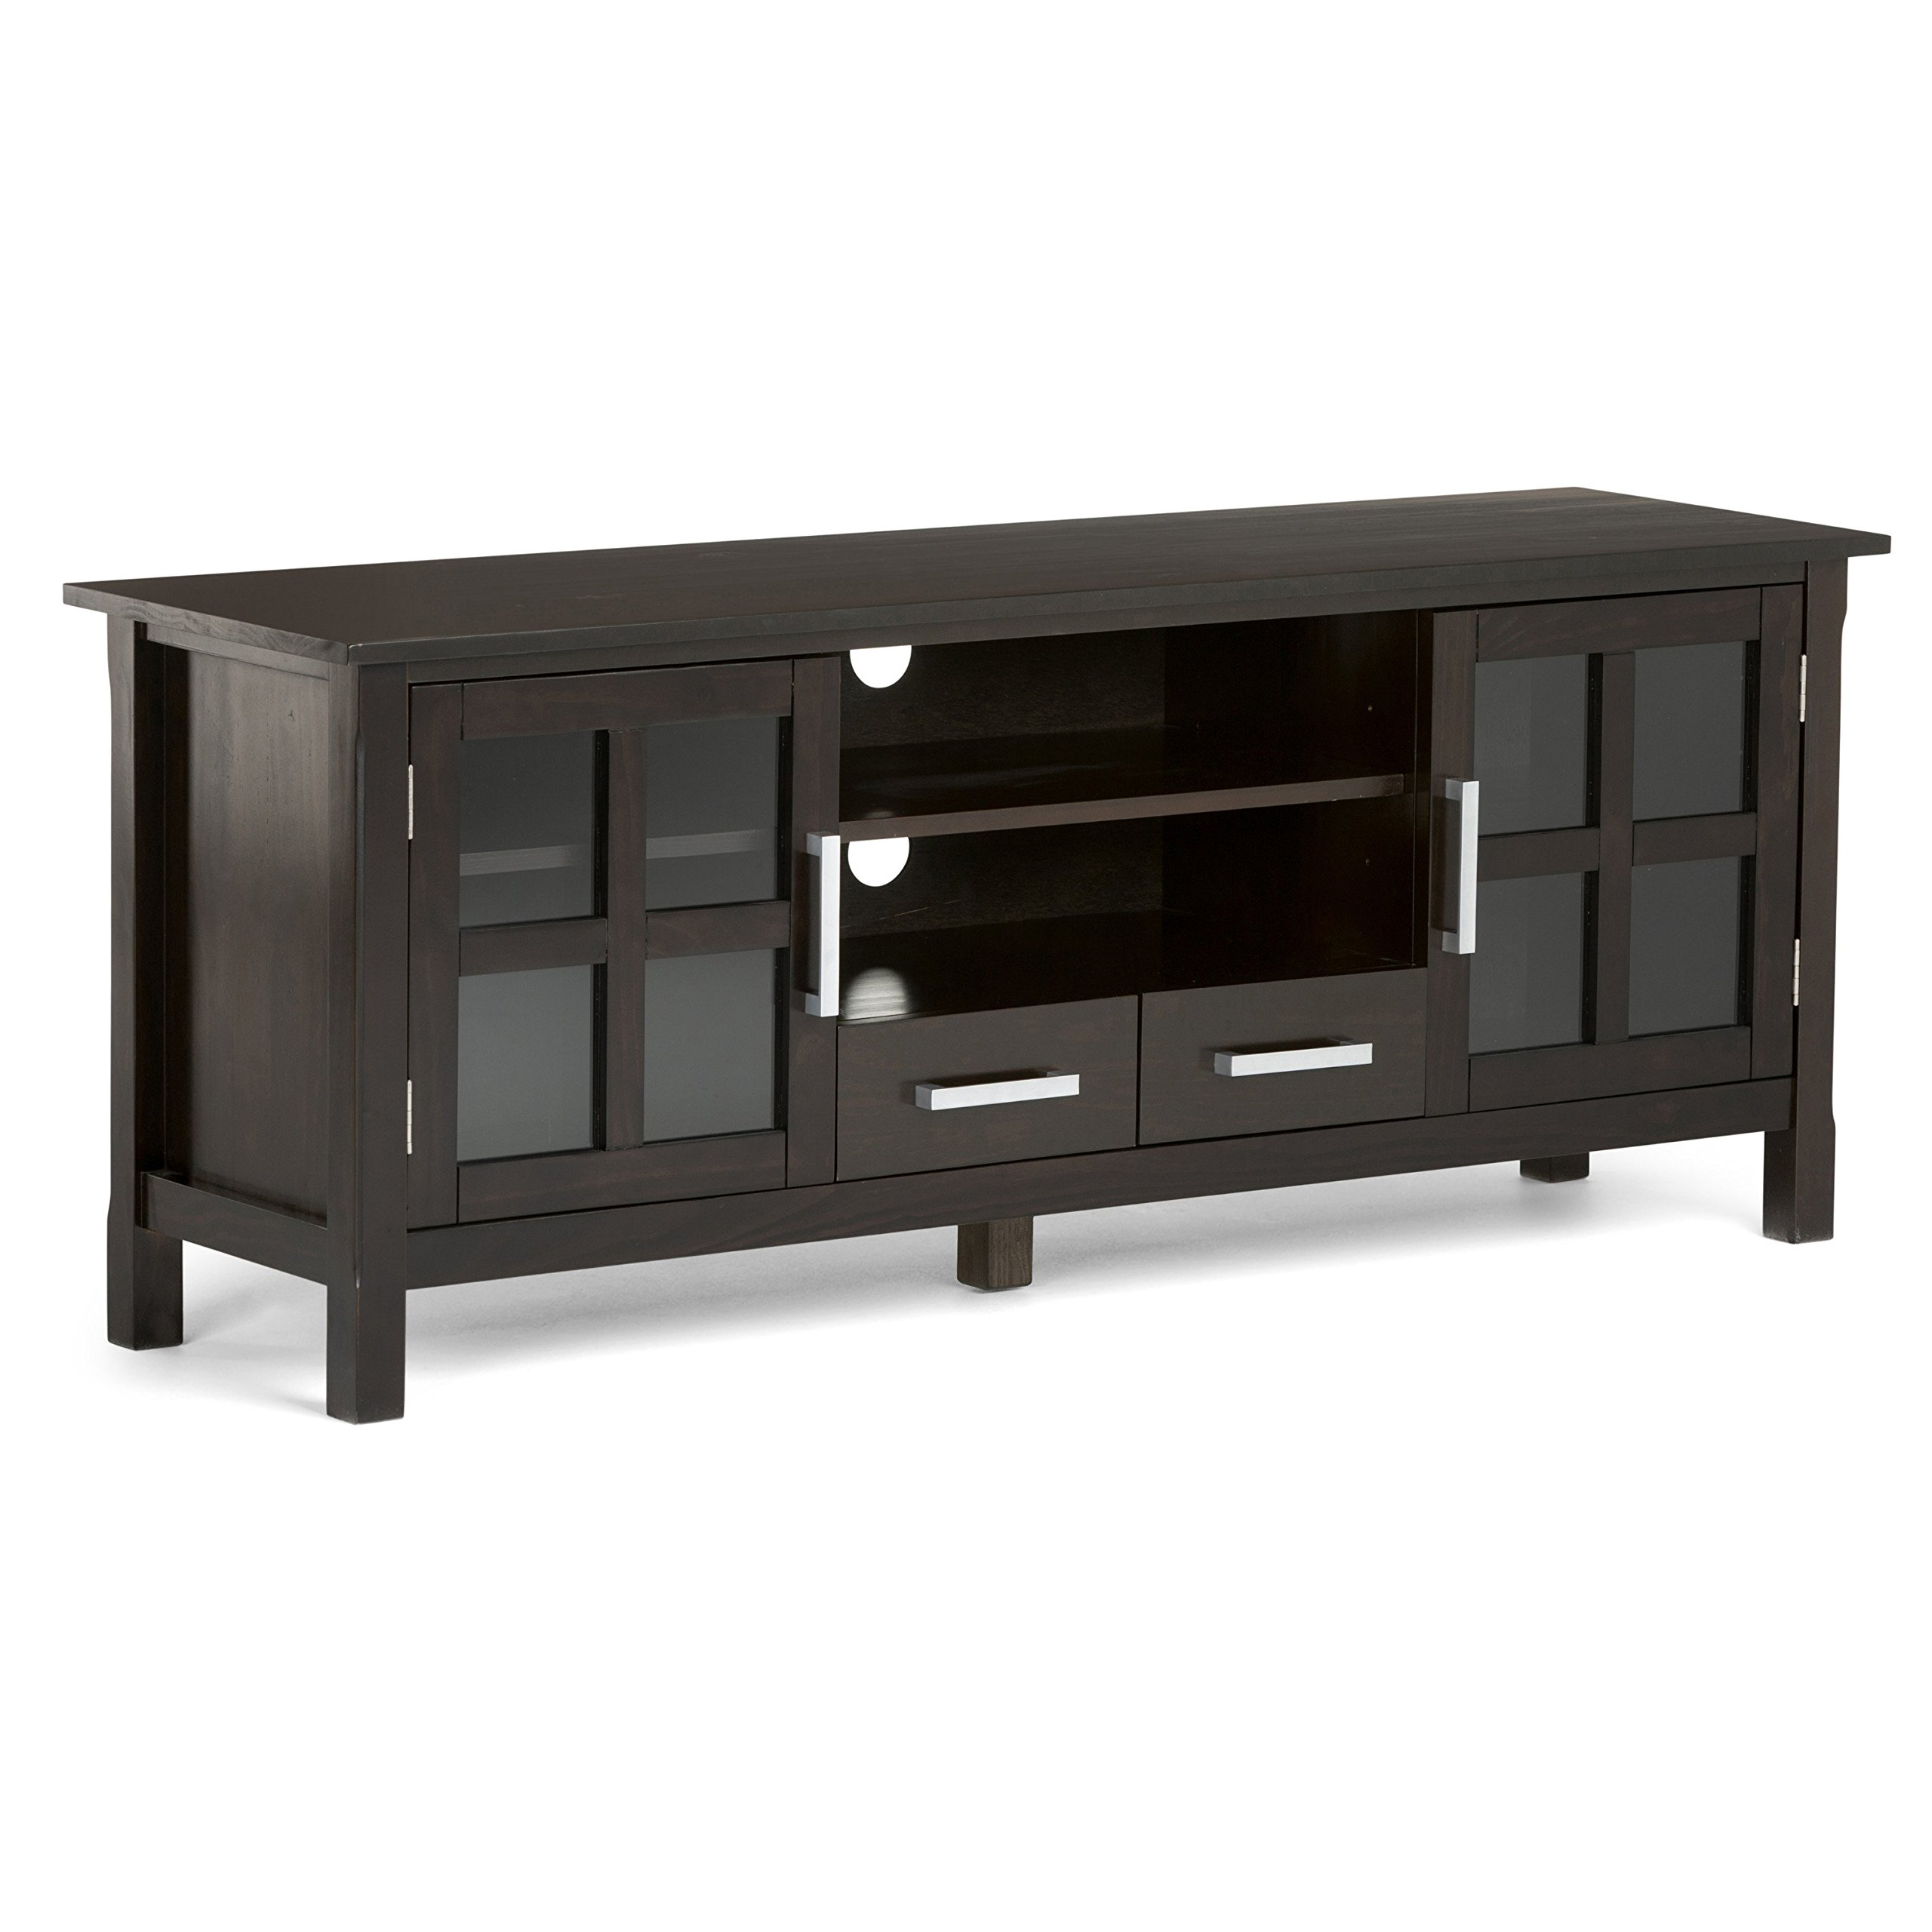 Simpli Home Kitchener TV Media Stand for TVs up to 66'', Dark Walnut Brown